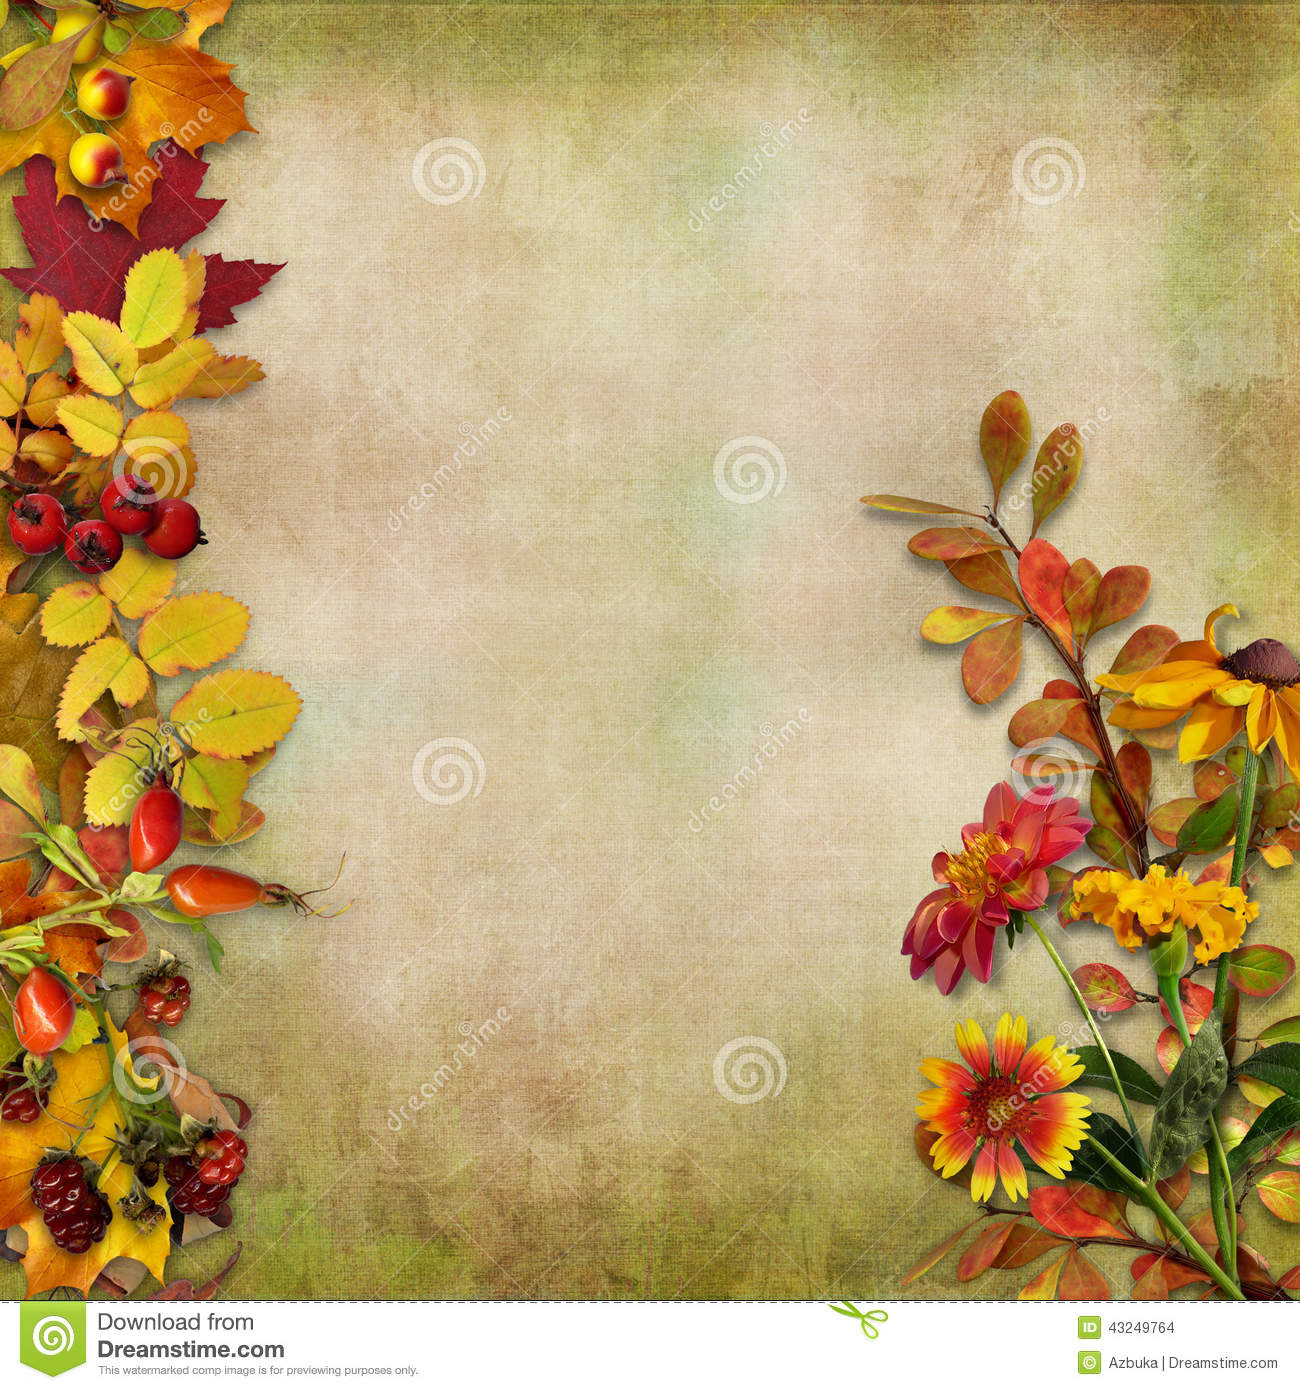 Fall Leaves Wallpaper Border Autumn Leaves Flowers And Berries On A Vintage Background